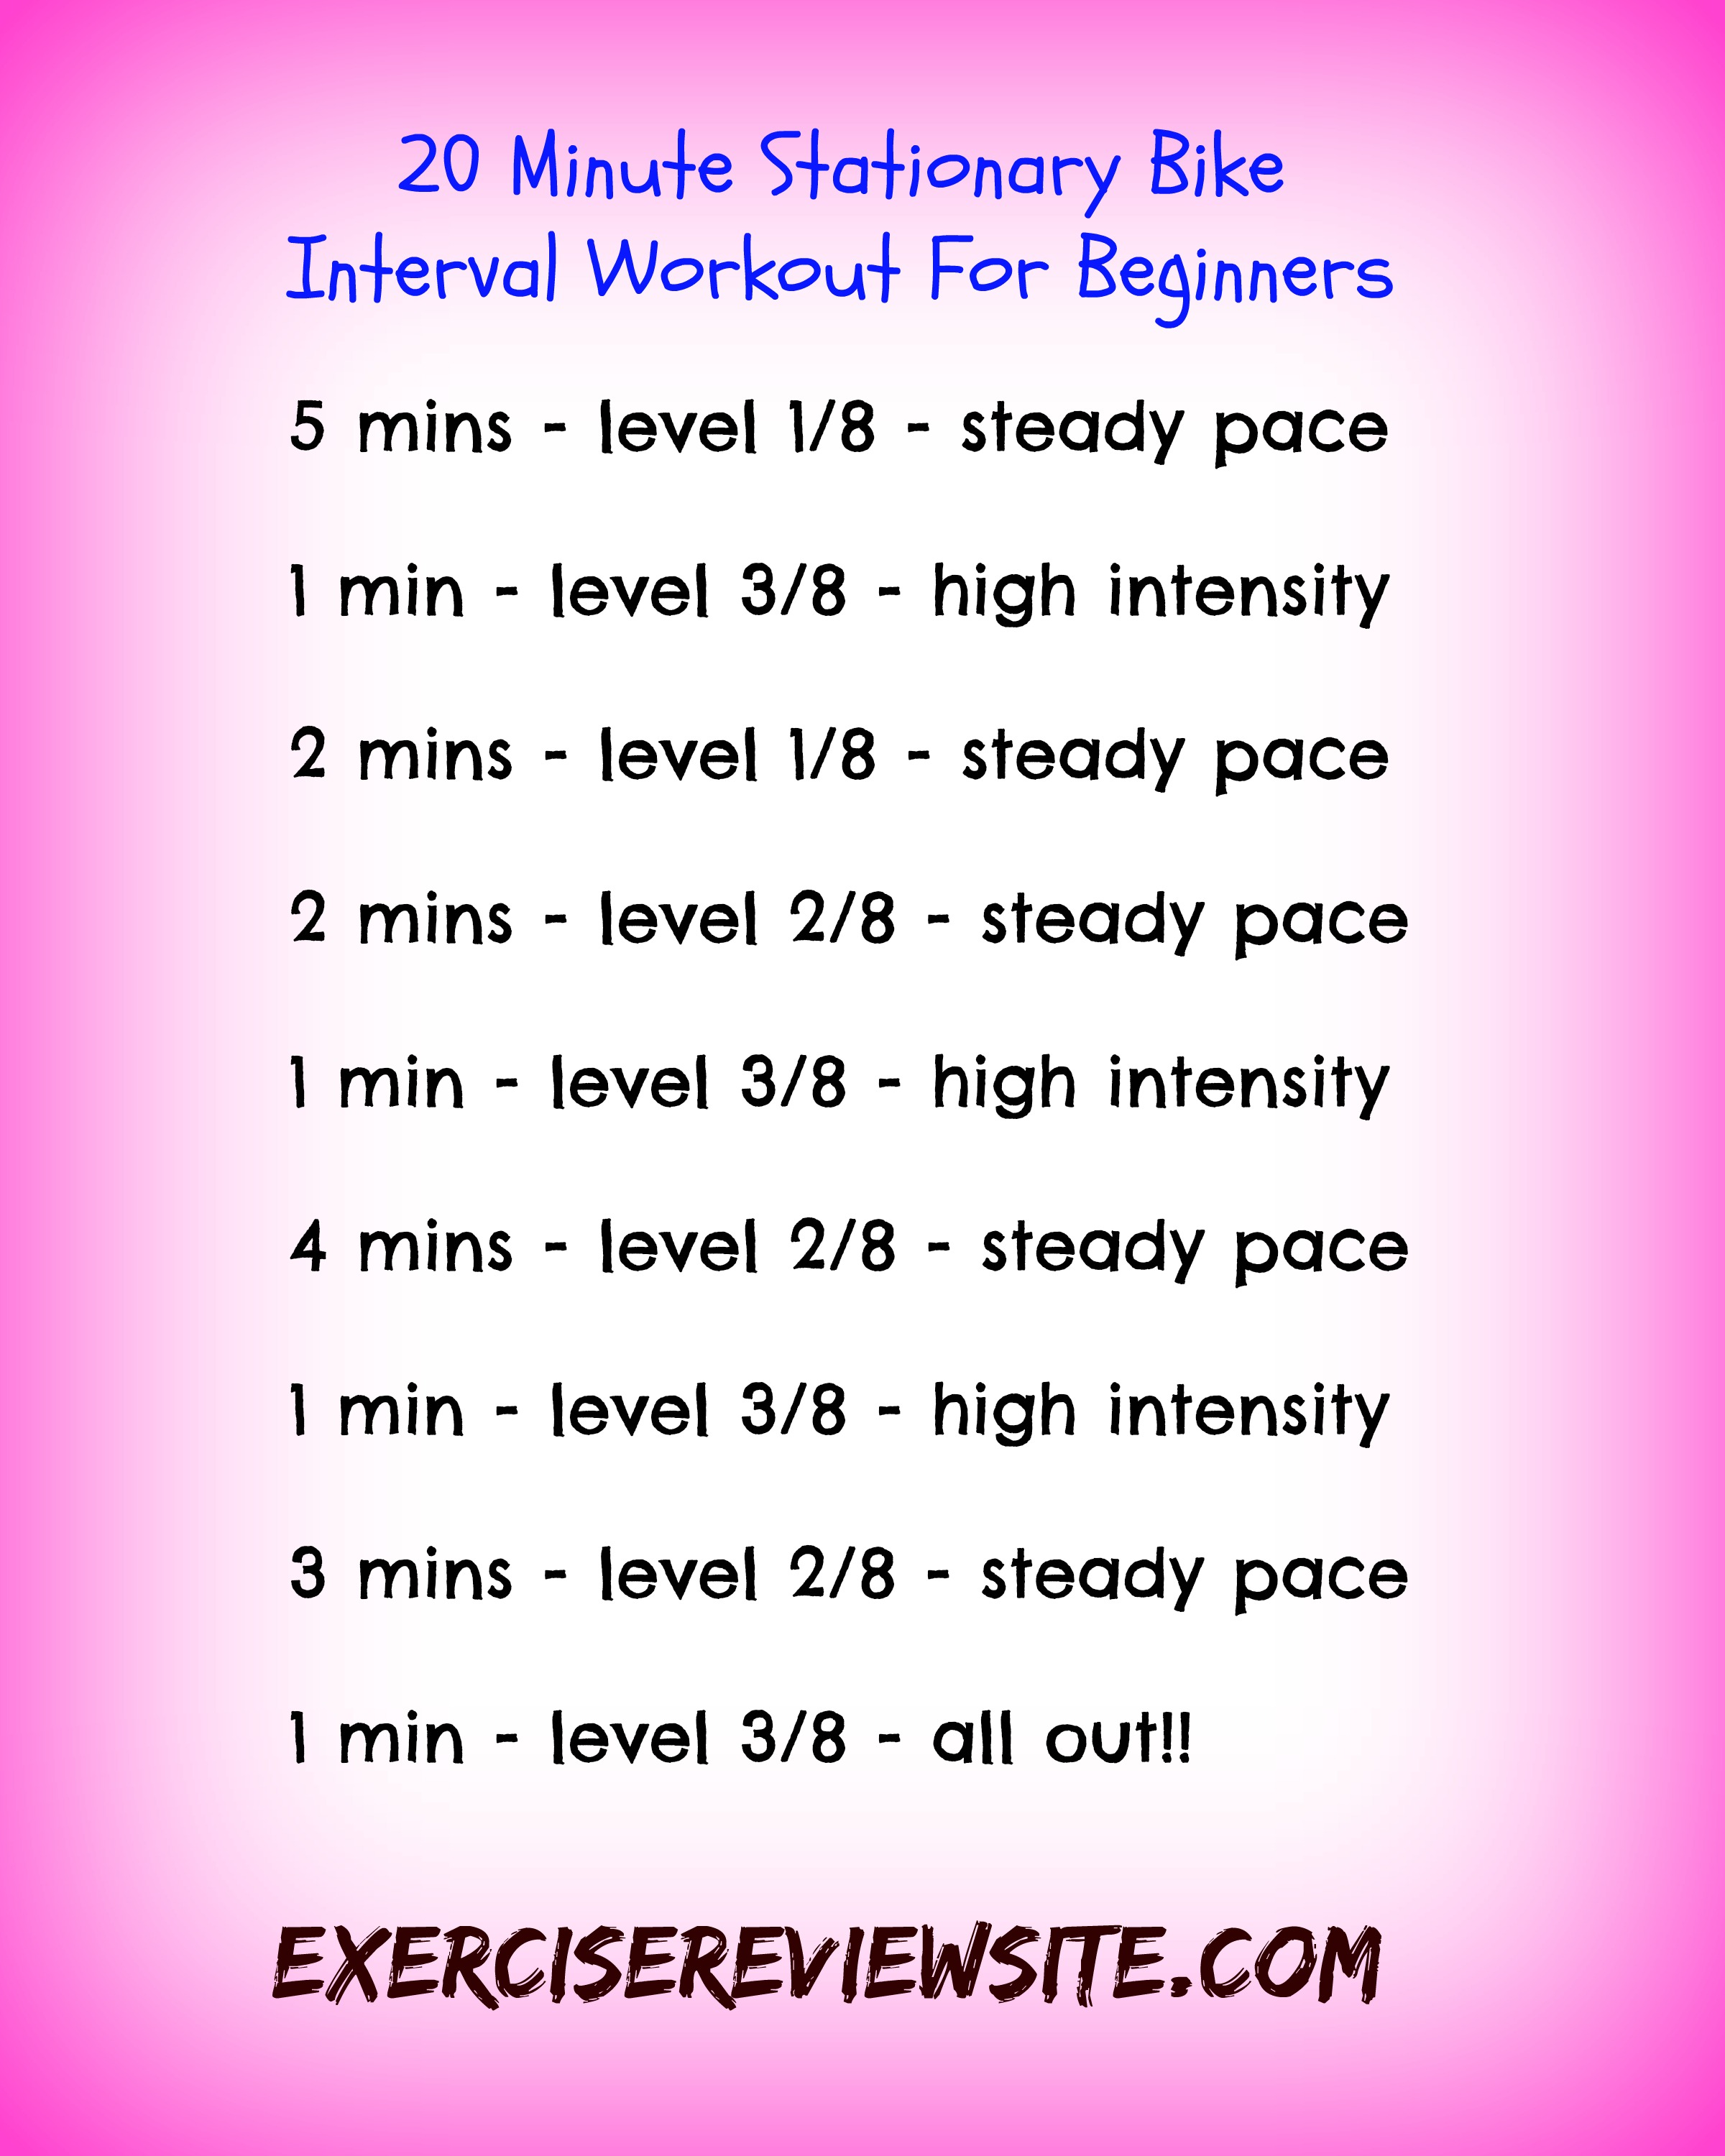 20 Minute Interval Workout For Beginners